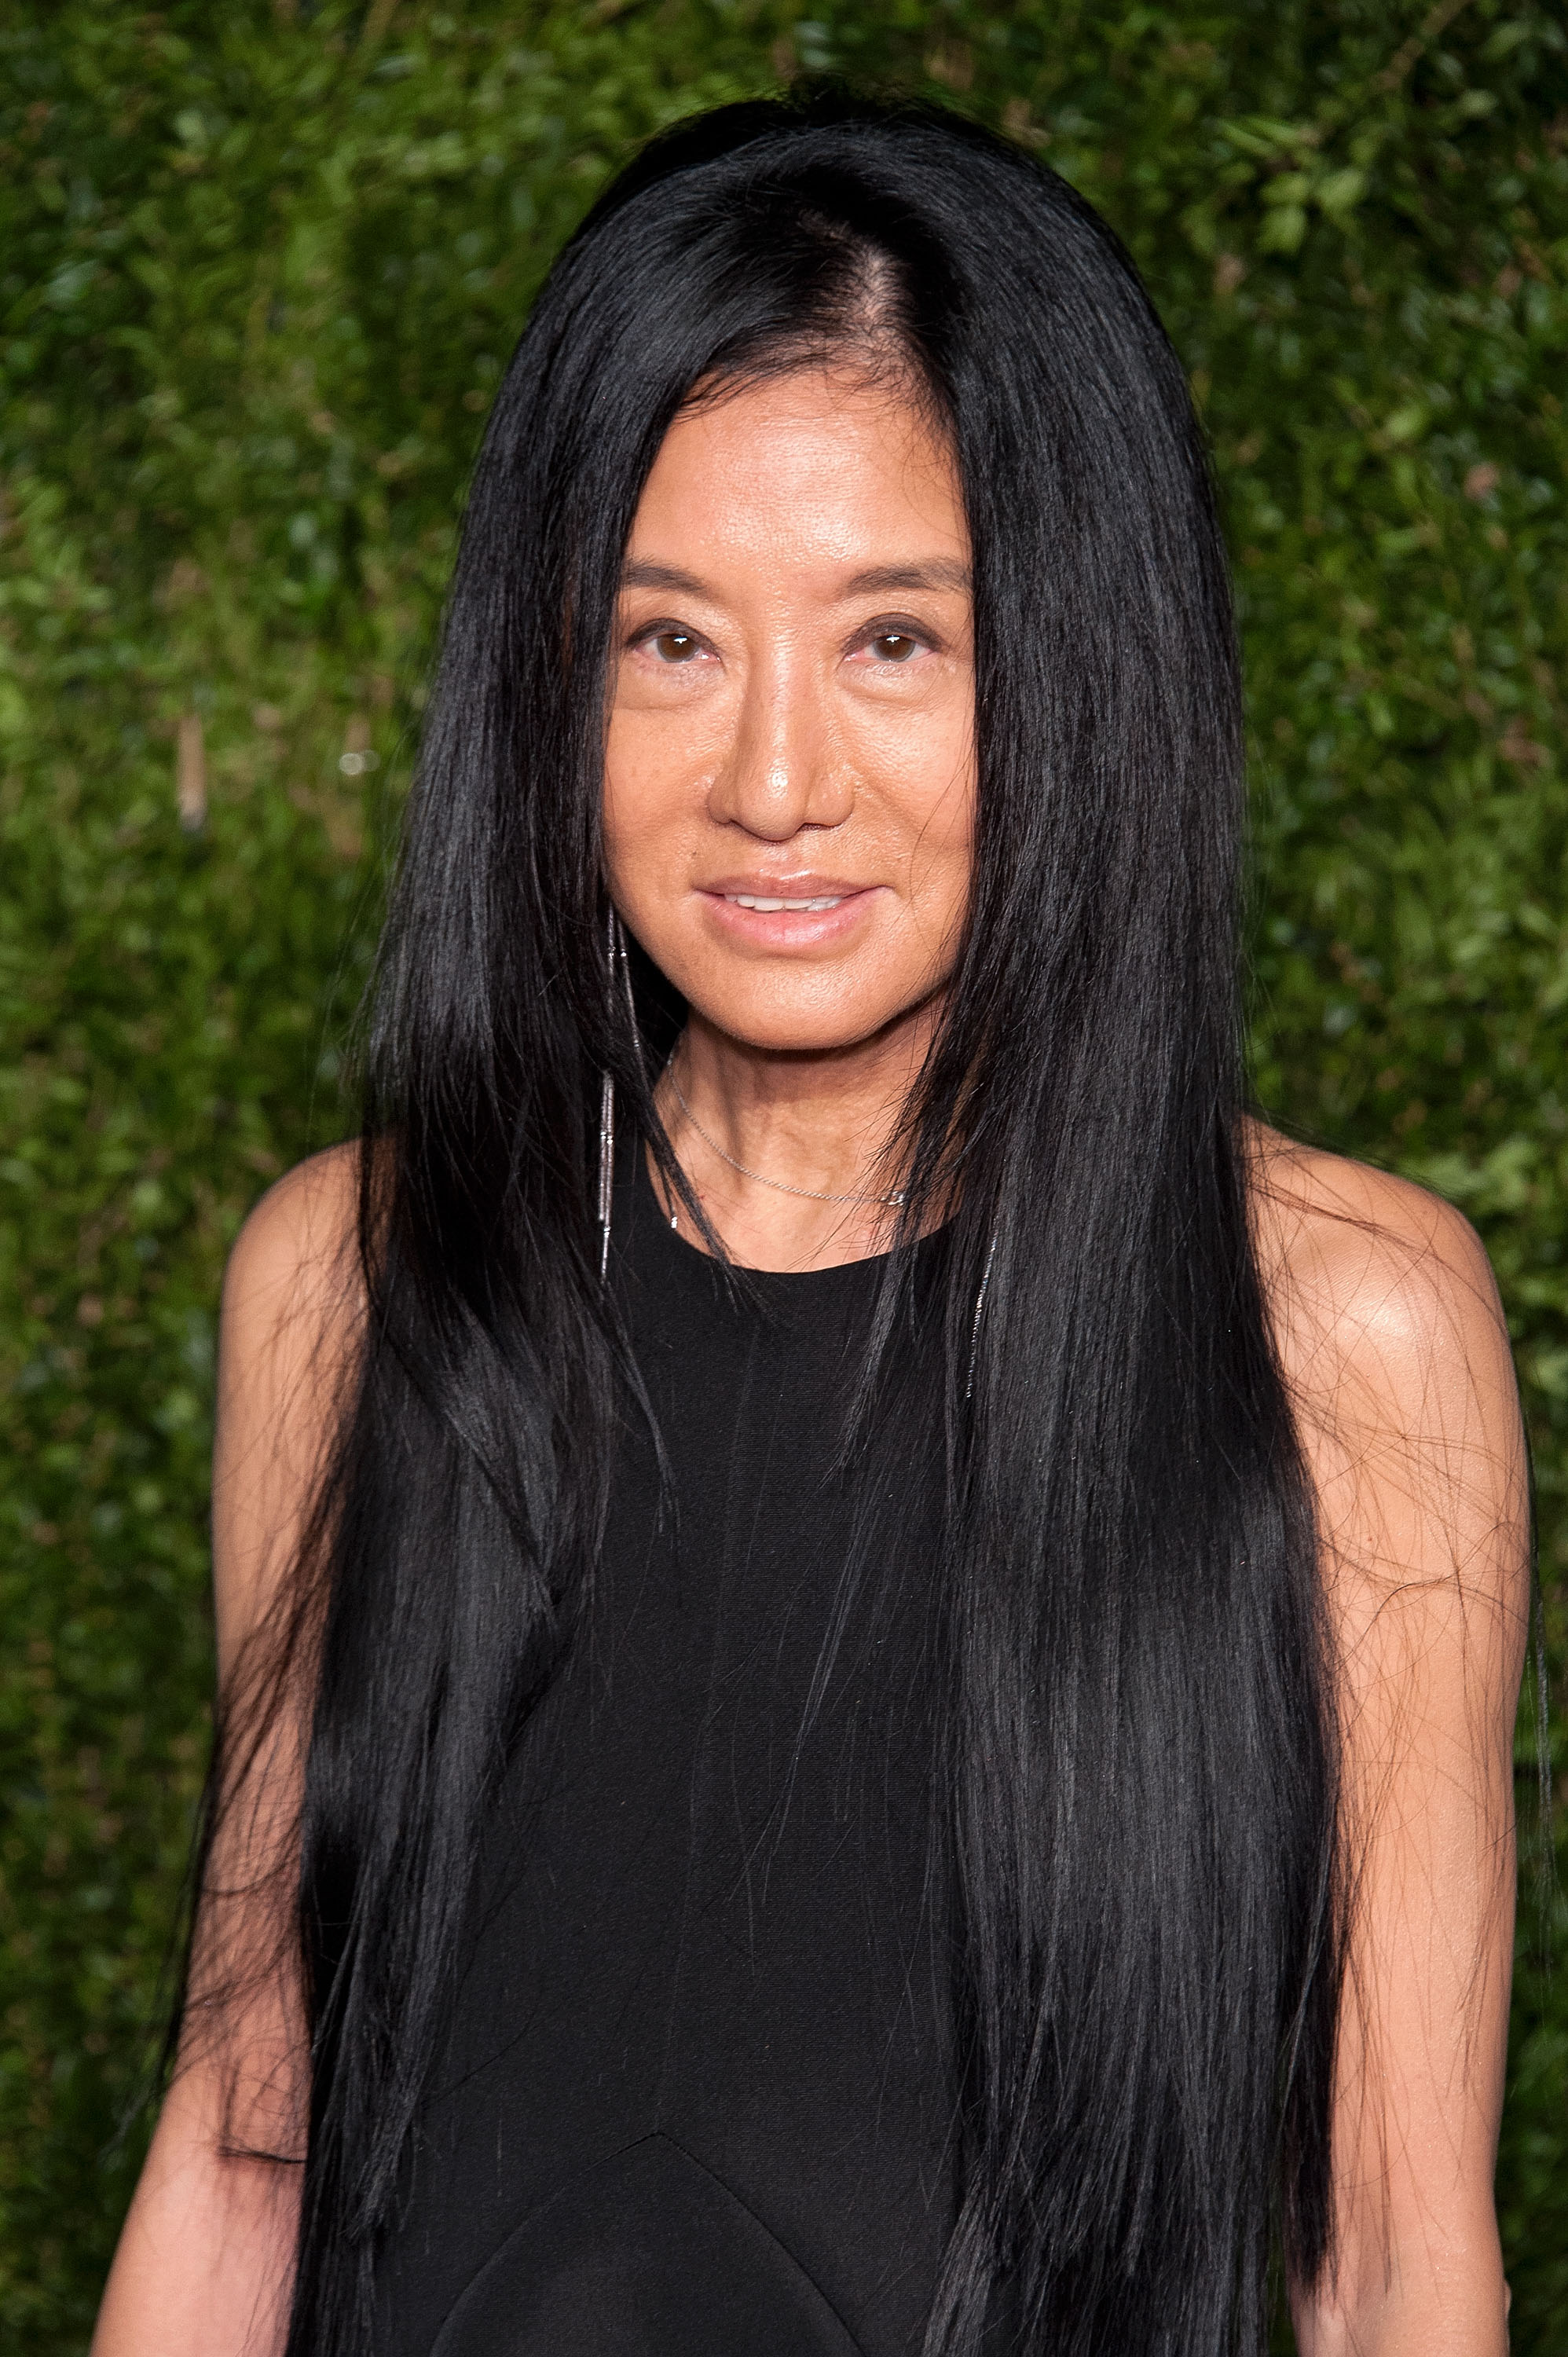 Vera Wang at the 12th annual CFDA/Vogue Fashion Fund Awards in New York City on Nov. 2, 2015.